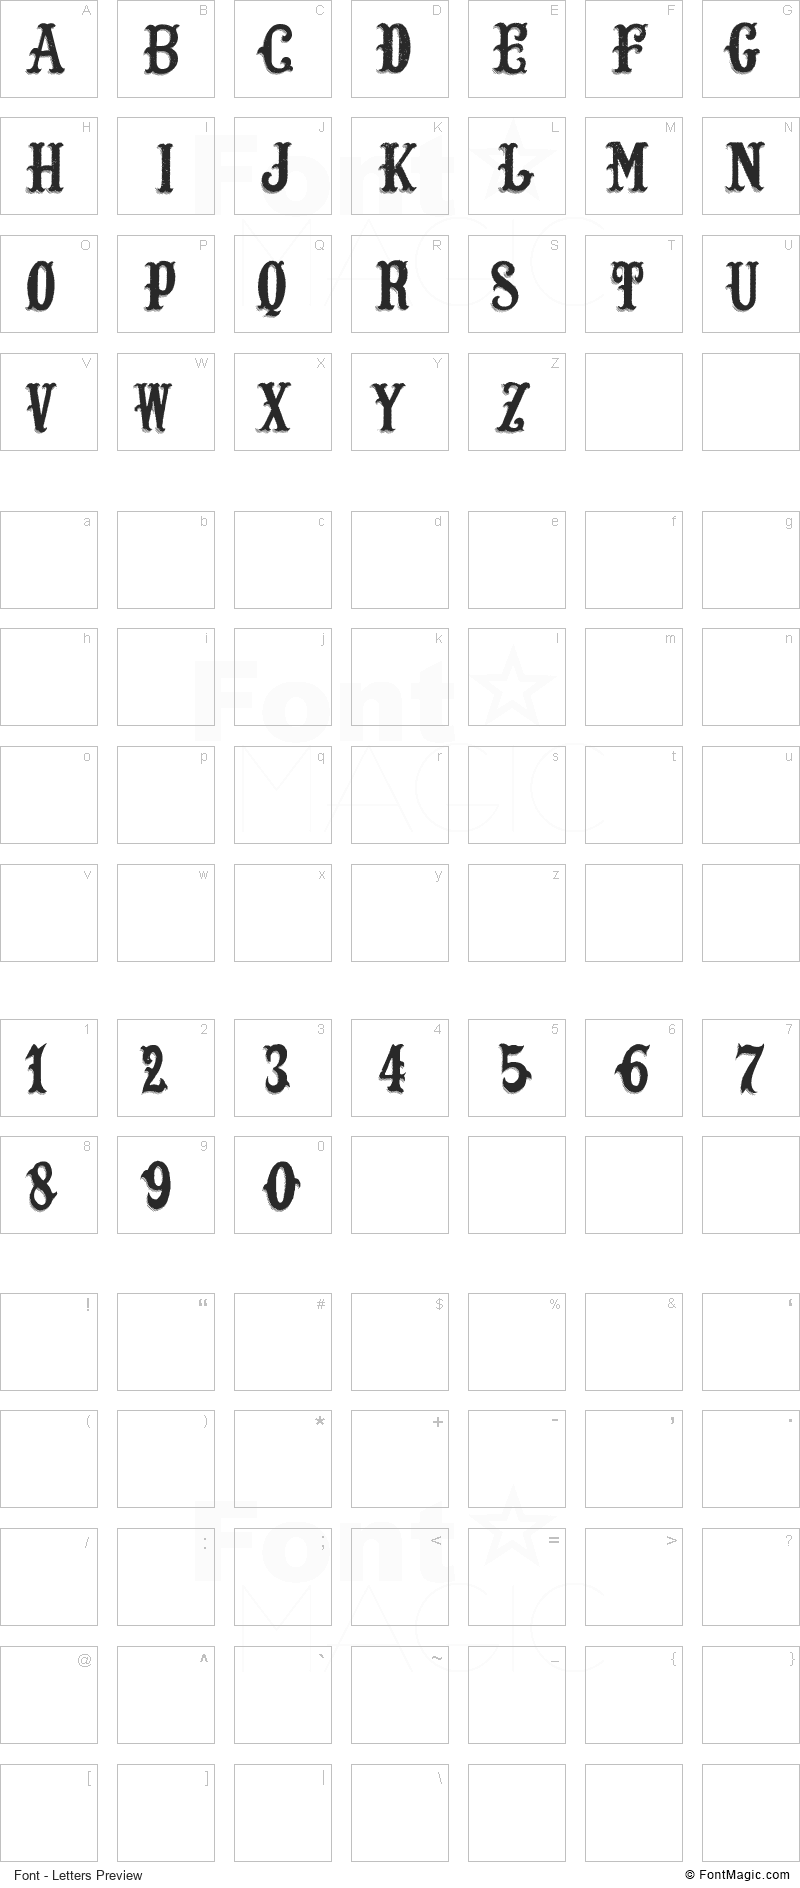 LOST SALOON Font - All Latters Preview Chart